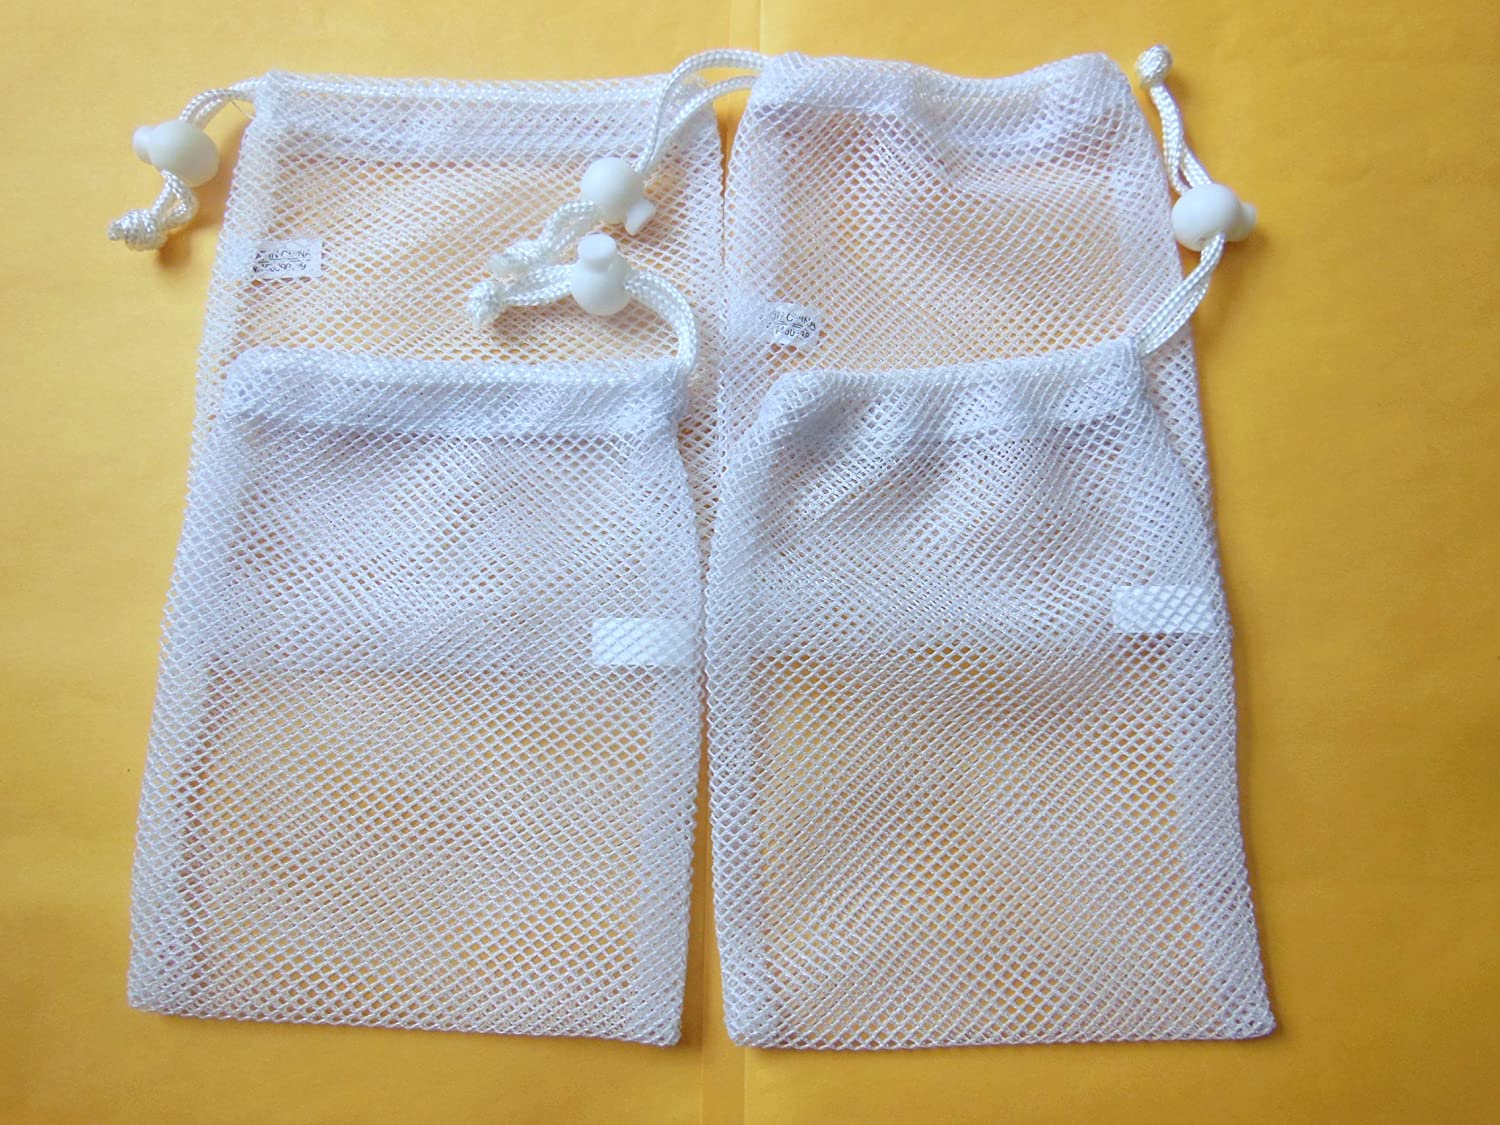 Mesh Bag for Dishwasher by MEDELA set of 4 bags